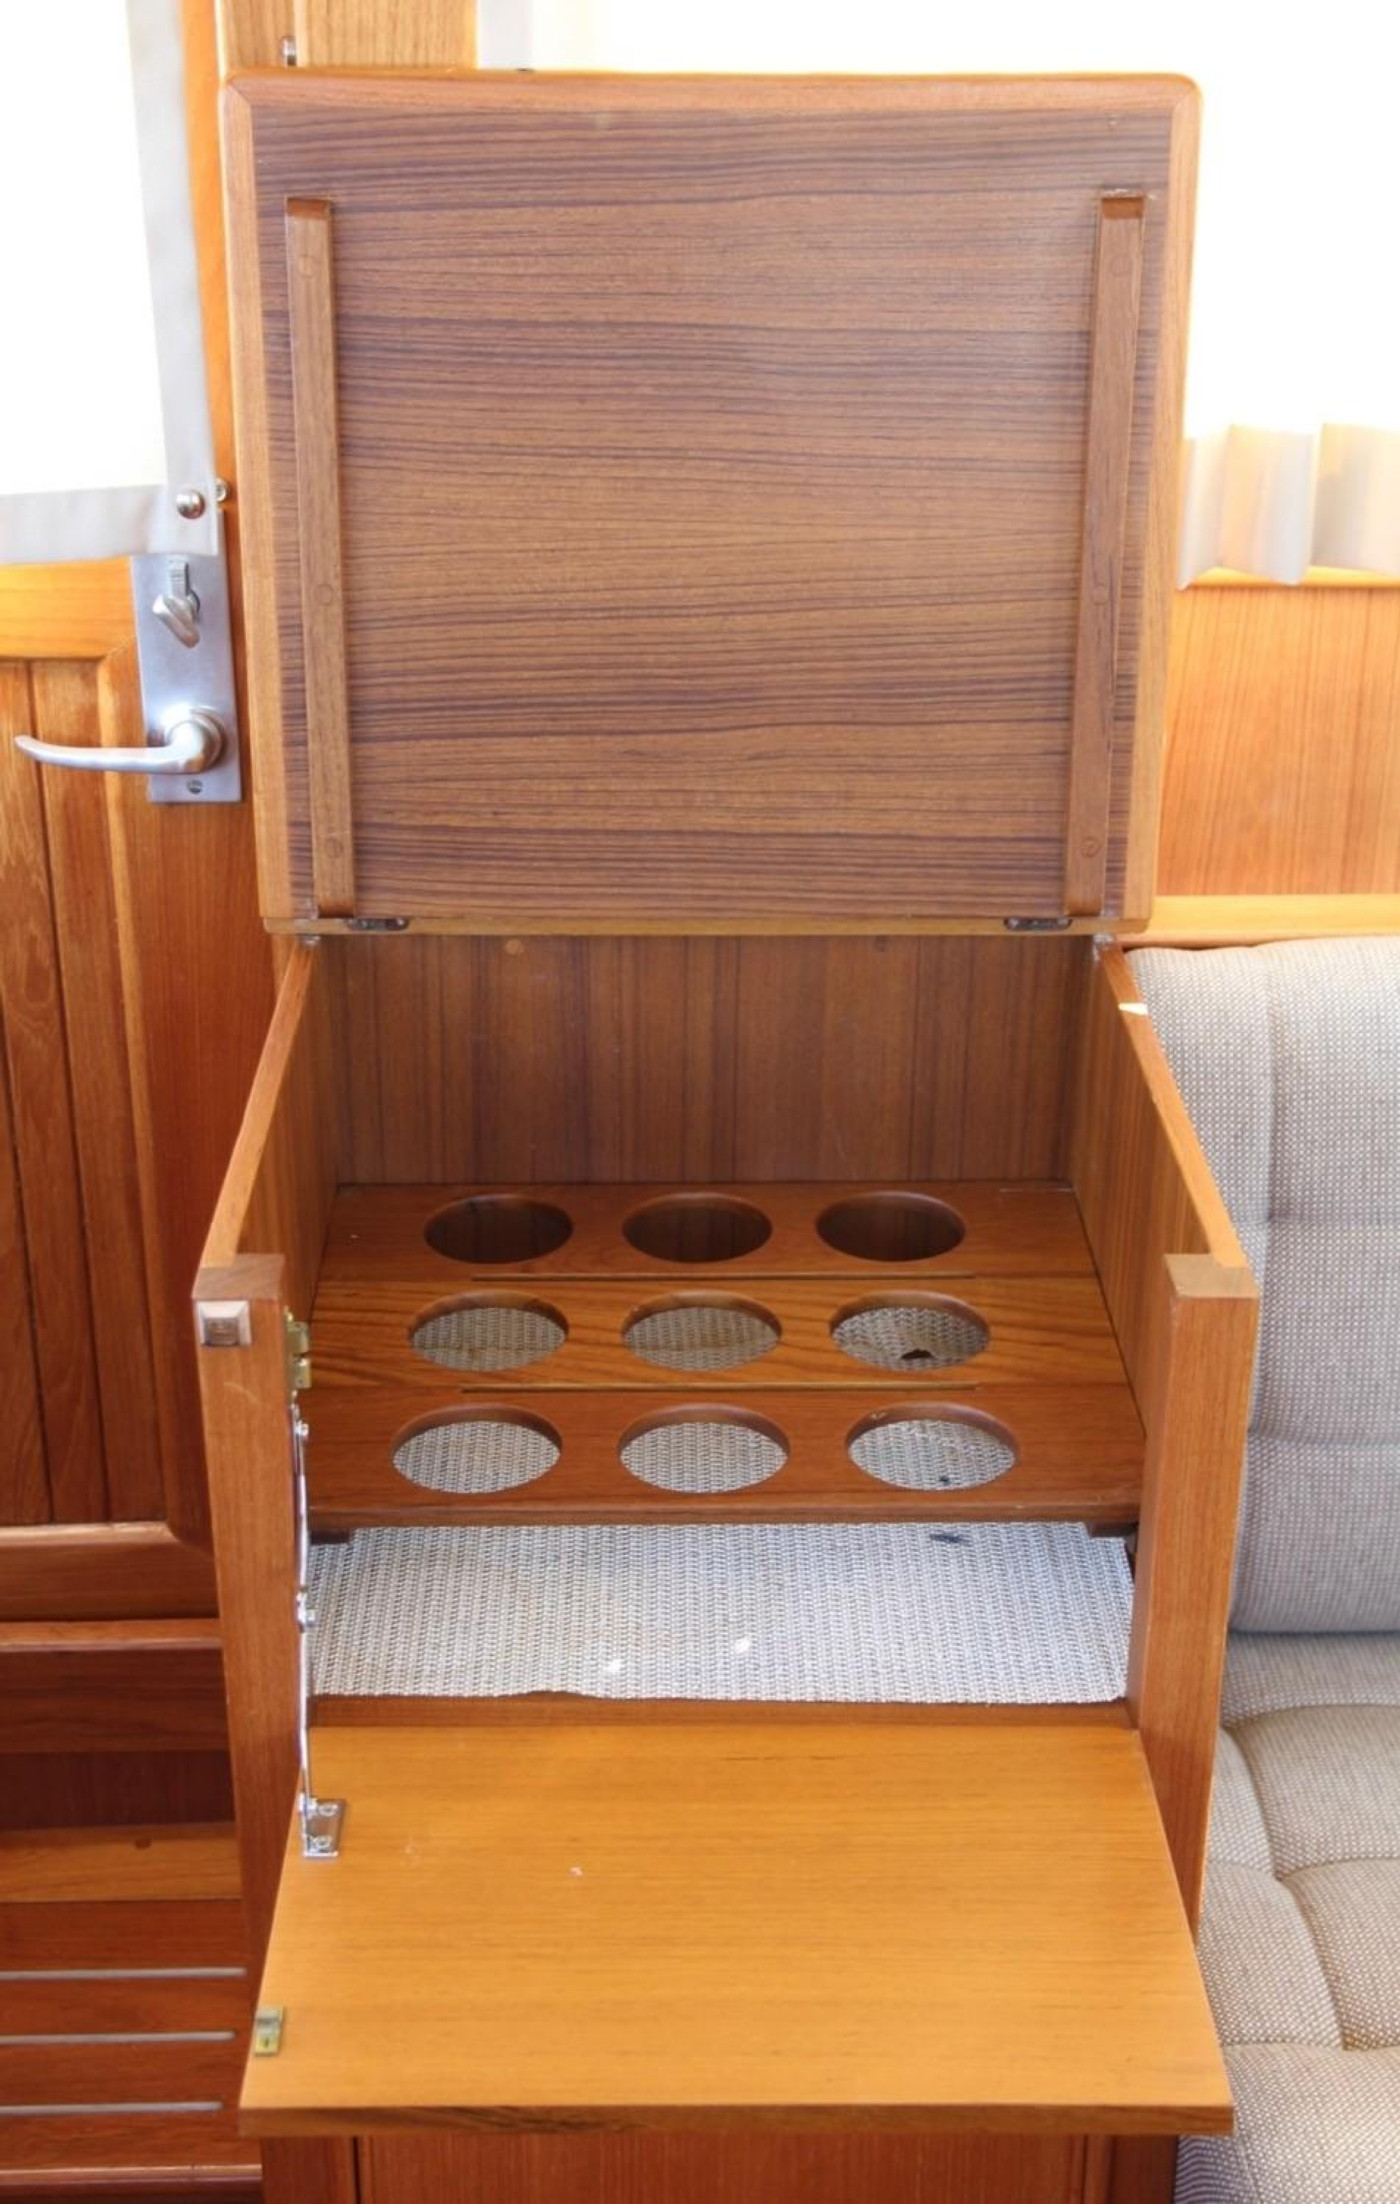 1995 Grand Banks Classic, Bar Cabinet